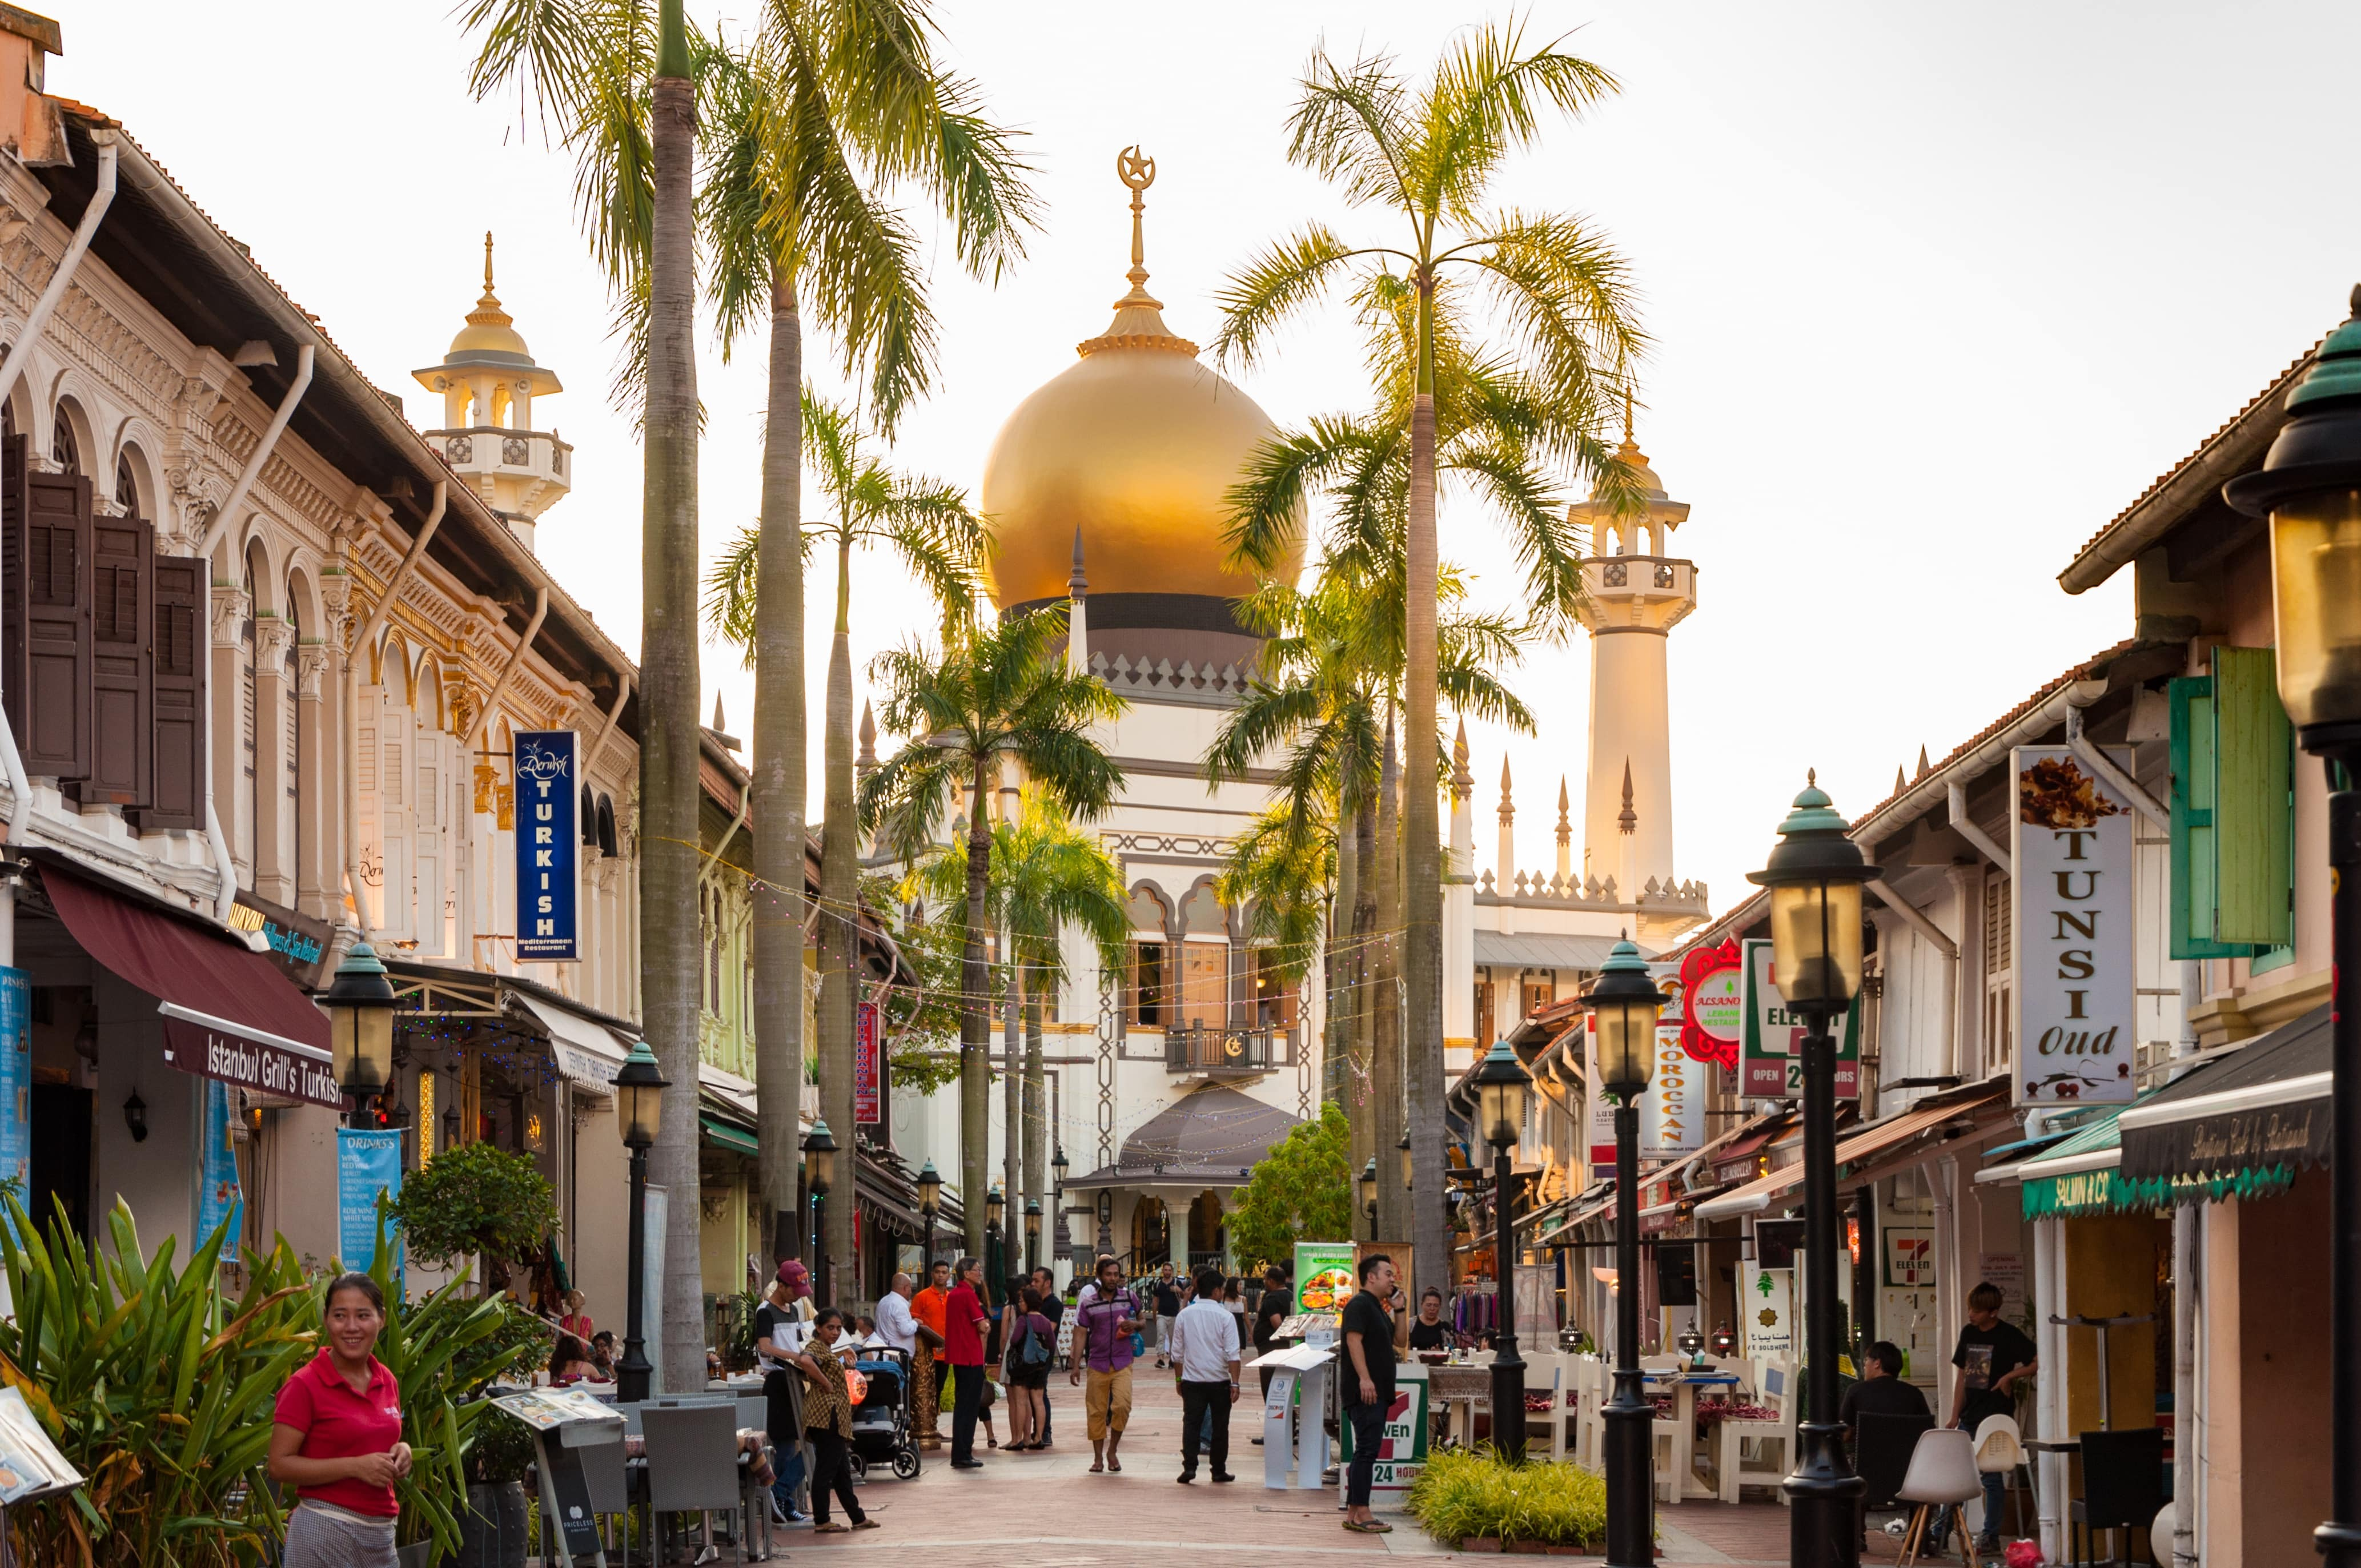 Sultan Mosque North bridge road Kampong Glam Singapore